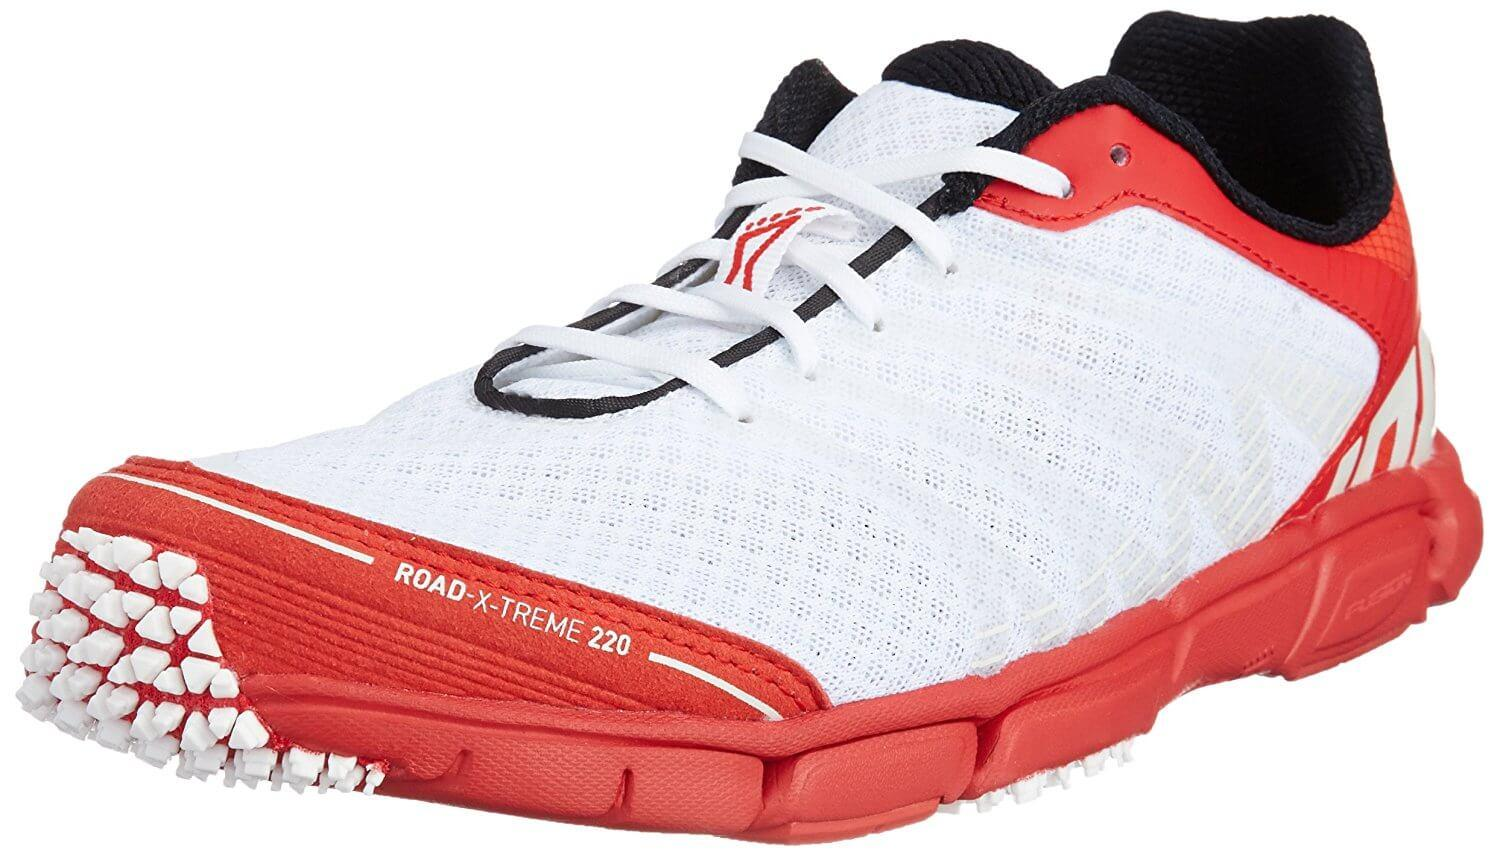 Apr Inov Or Road Treme In 220 To 8 2019 Buy X Not K13TlJ5uFc